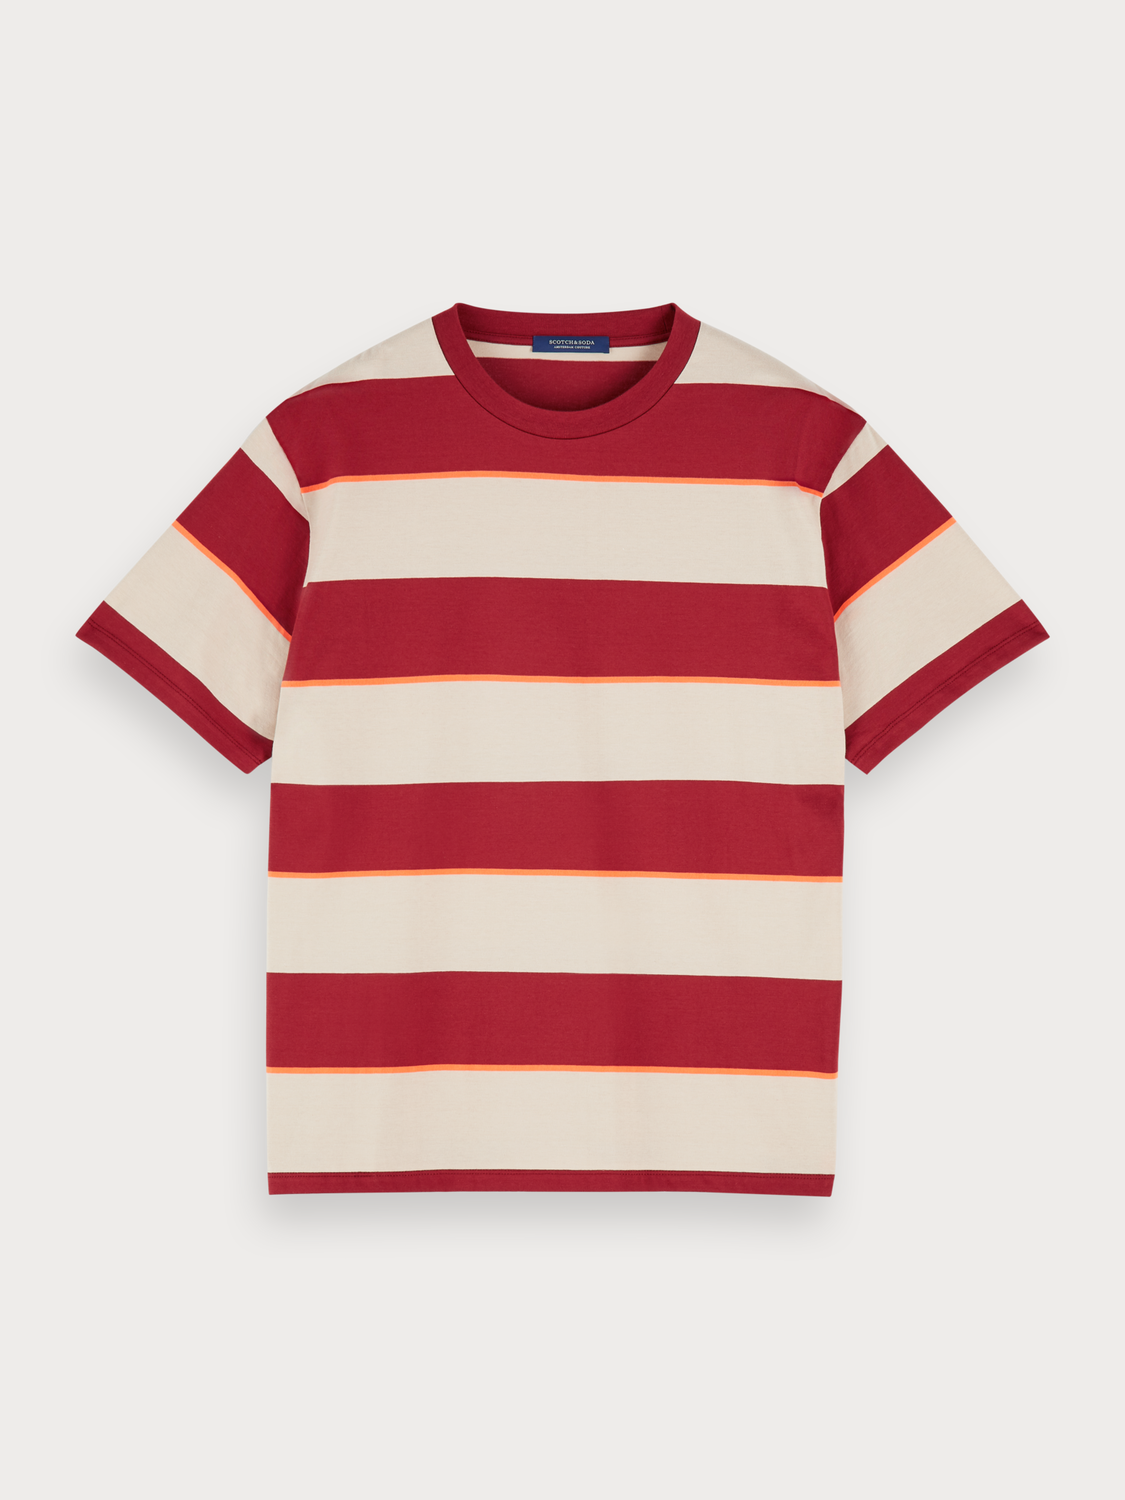 Uomo T-shirt in jersey a righe